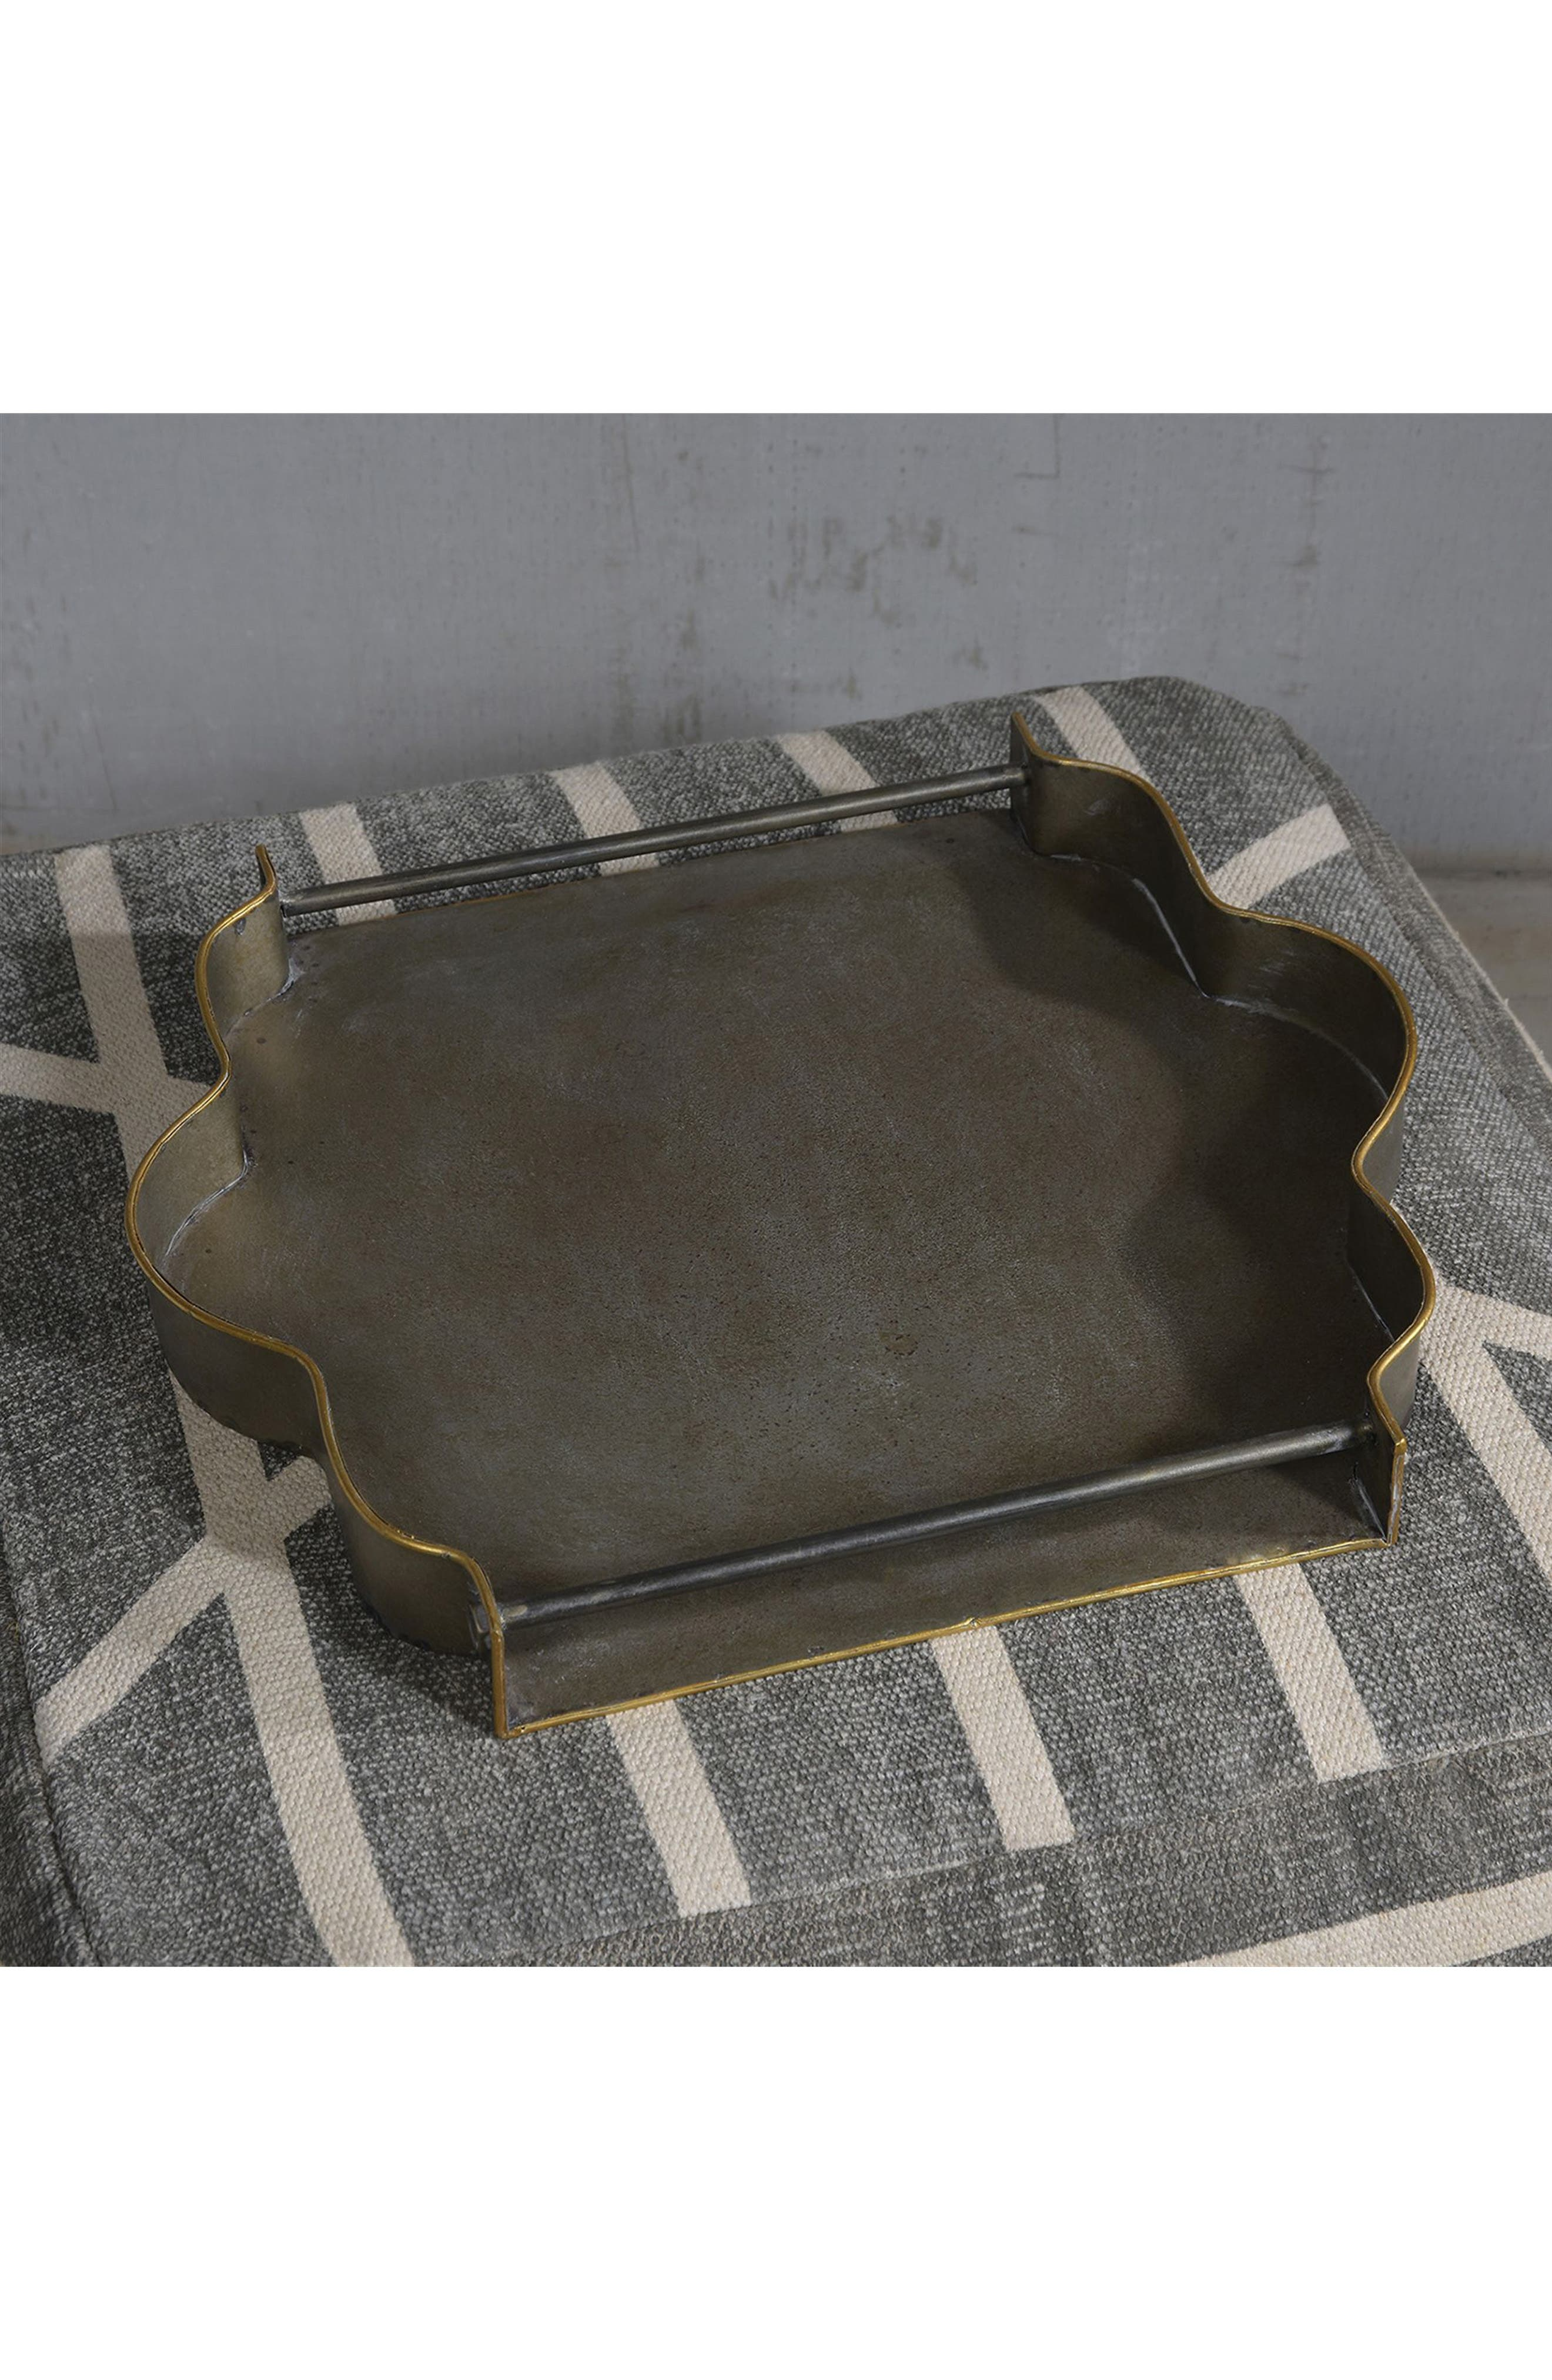 York Galvanized Tray,                             Alternate thumbnail 2, color,                             Galvanized With Gold Rim